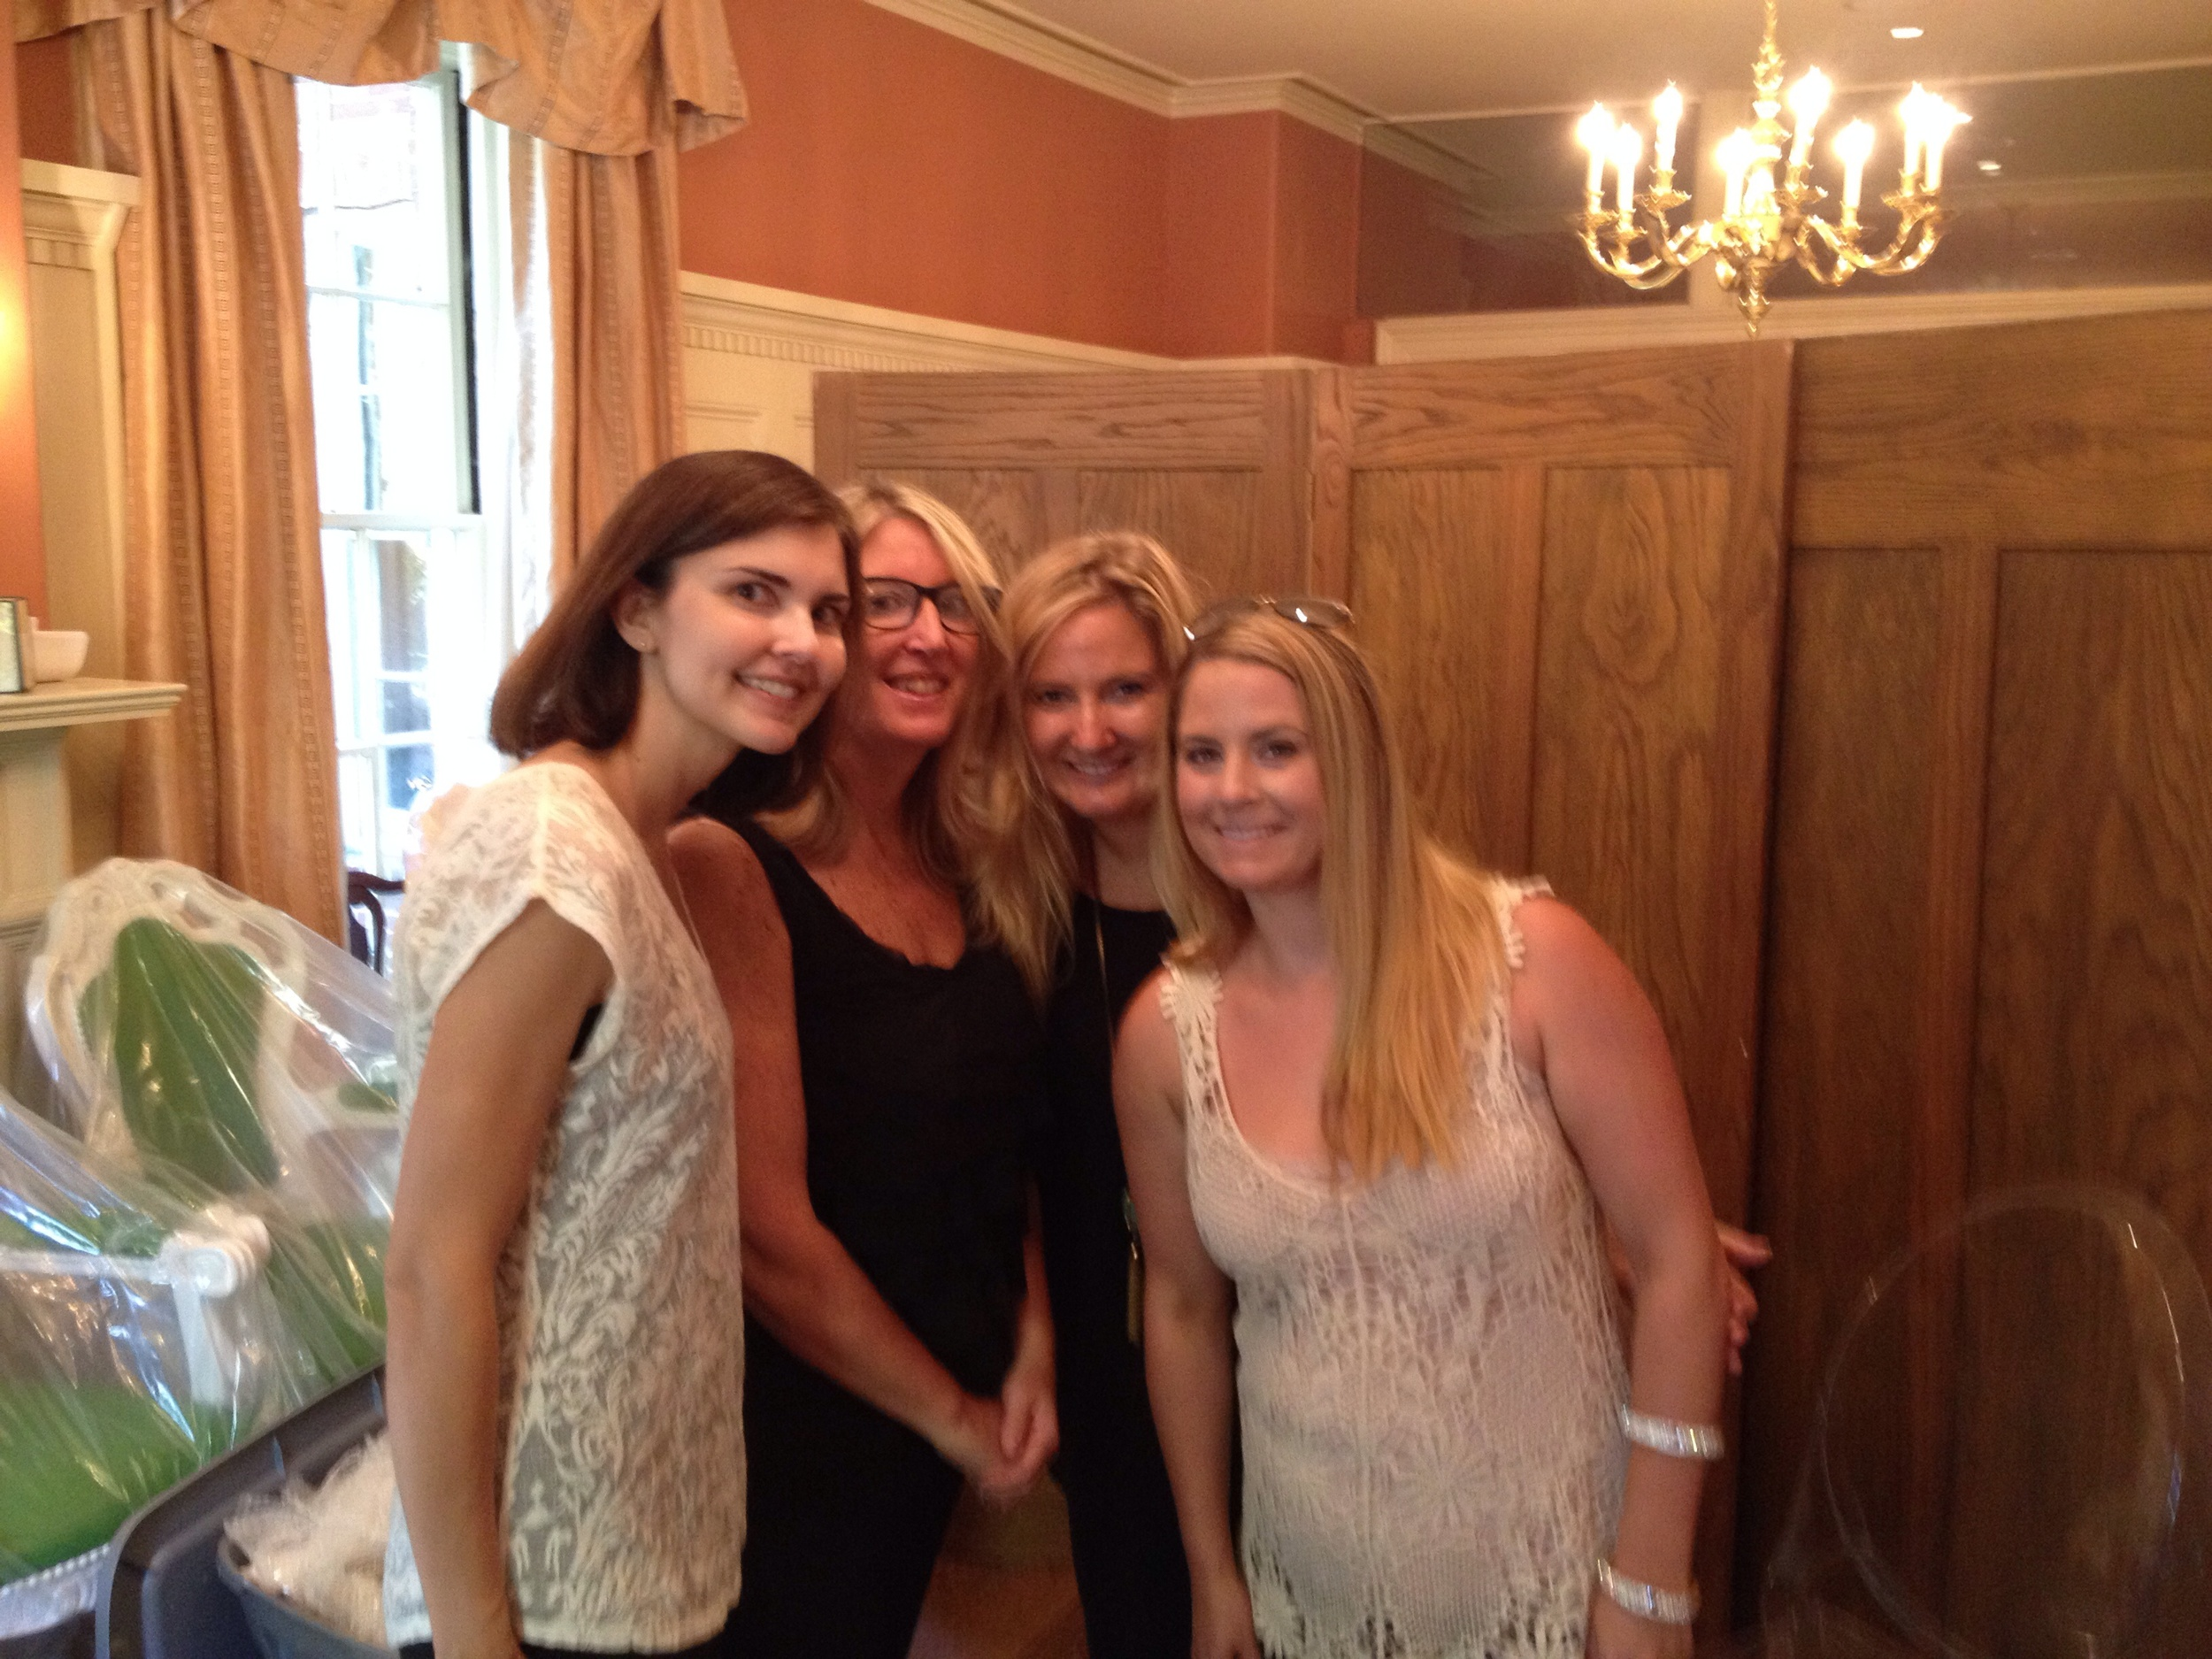 Sarah and Amy from Bliss Celebrations, along with Caitlin and Erica from Reverie Gallery getting ready for the shoot.